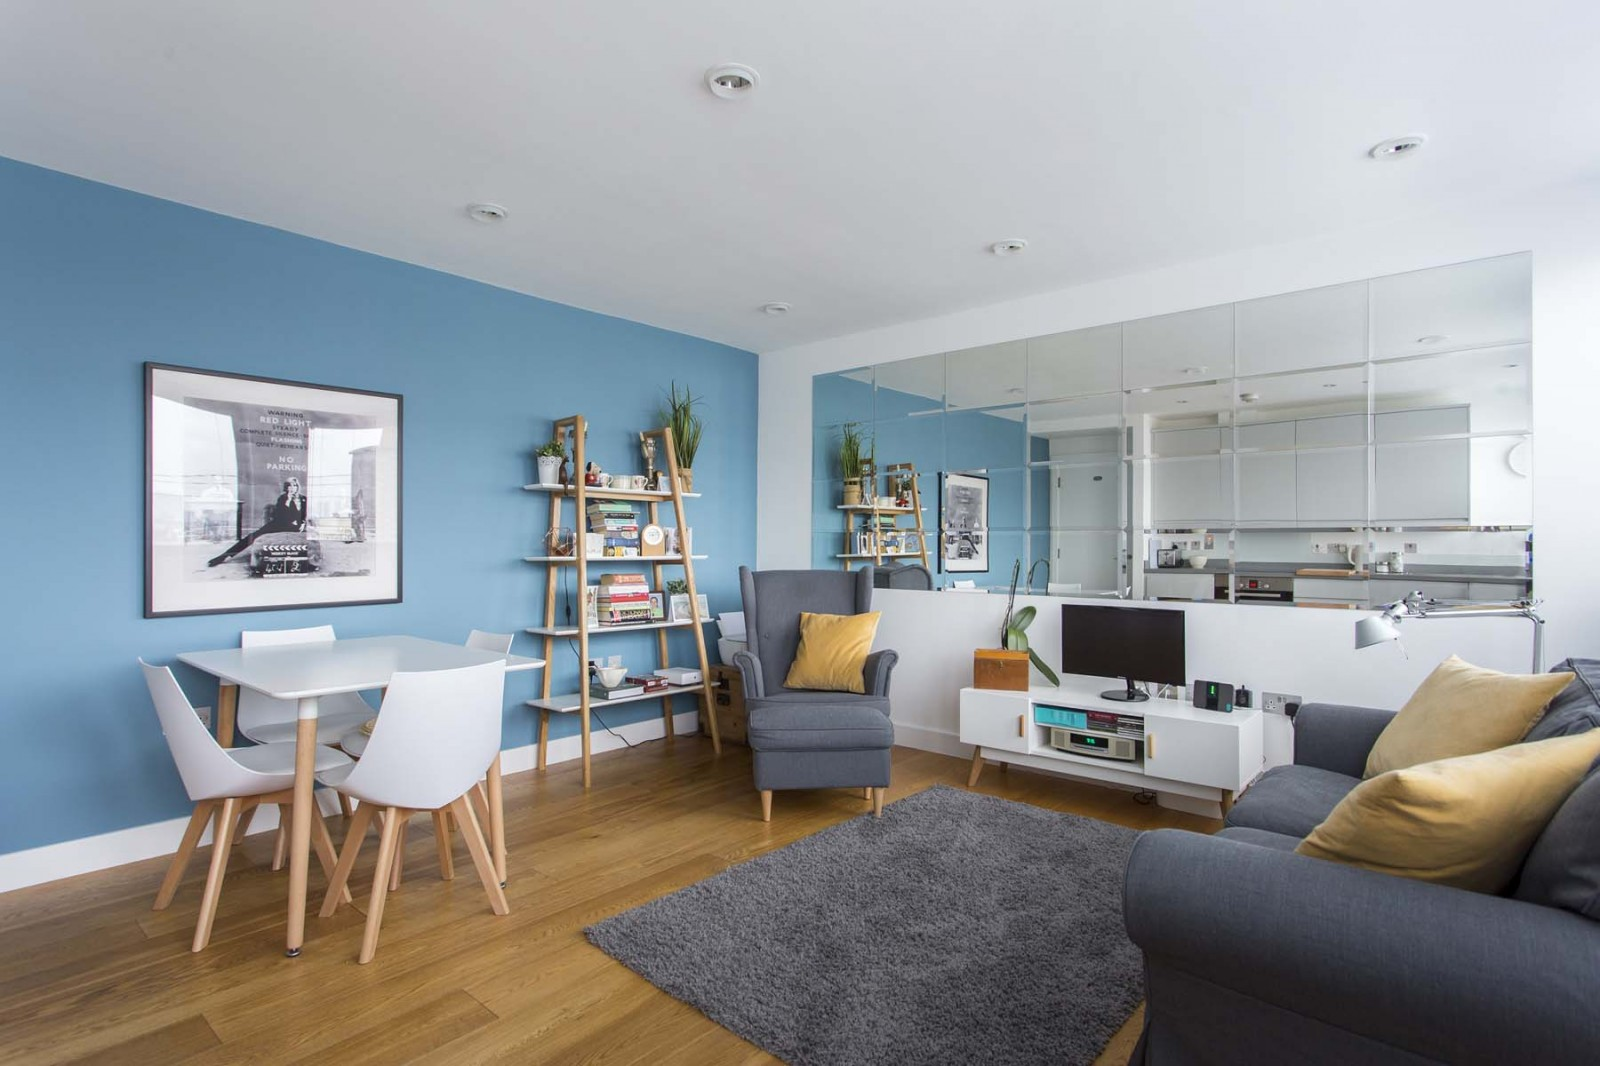 2 bed flat for sale in Grafton Road, London NW5 - 46189367 - Zoopla